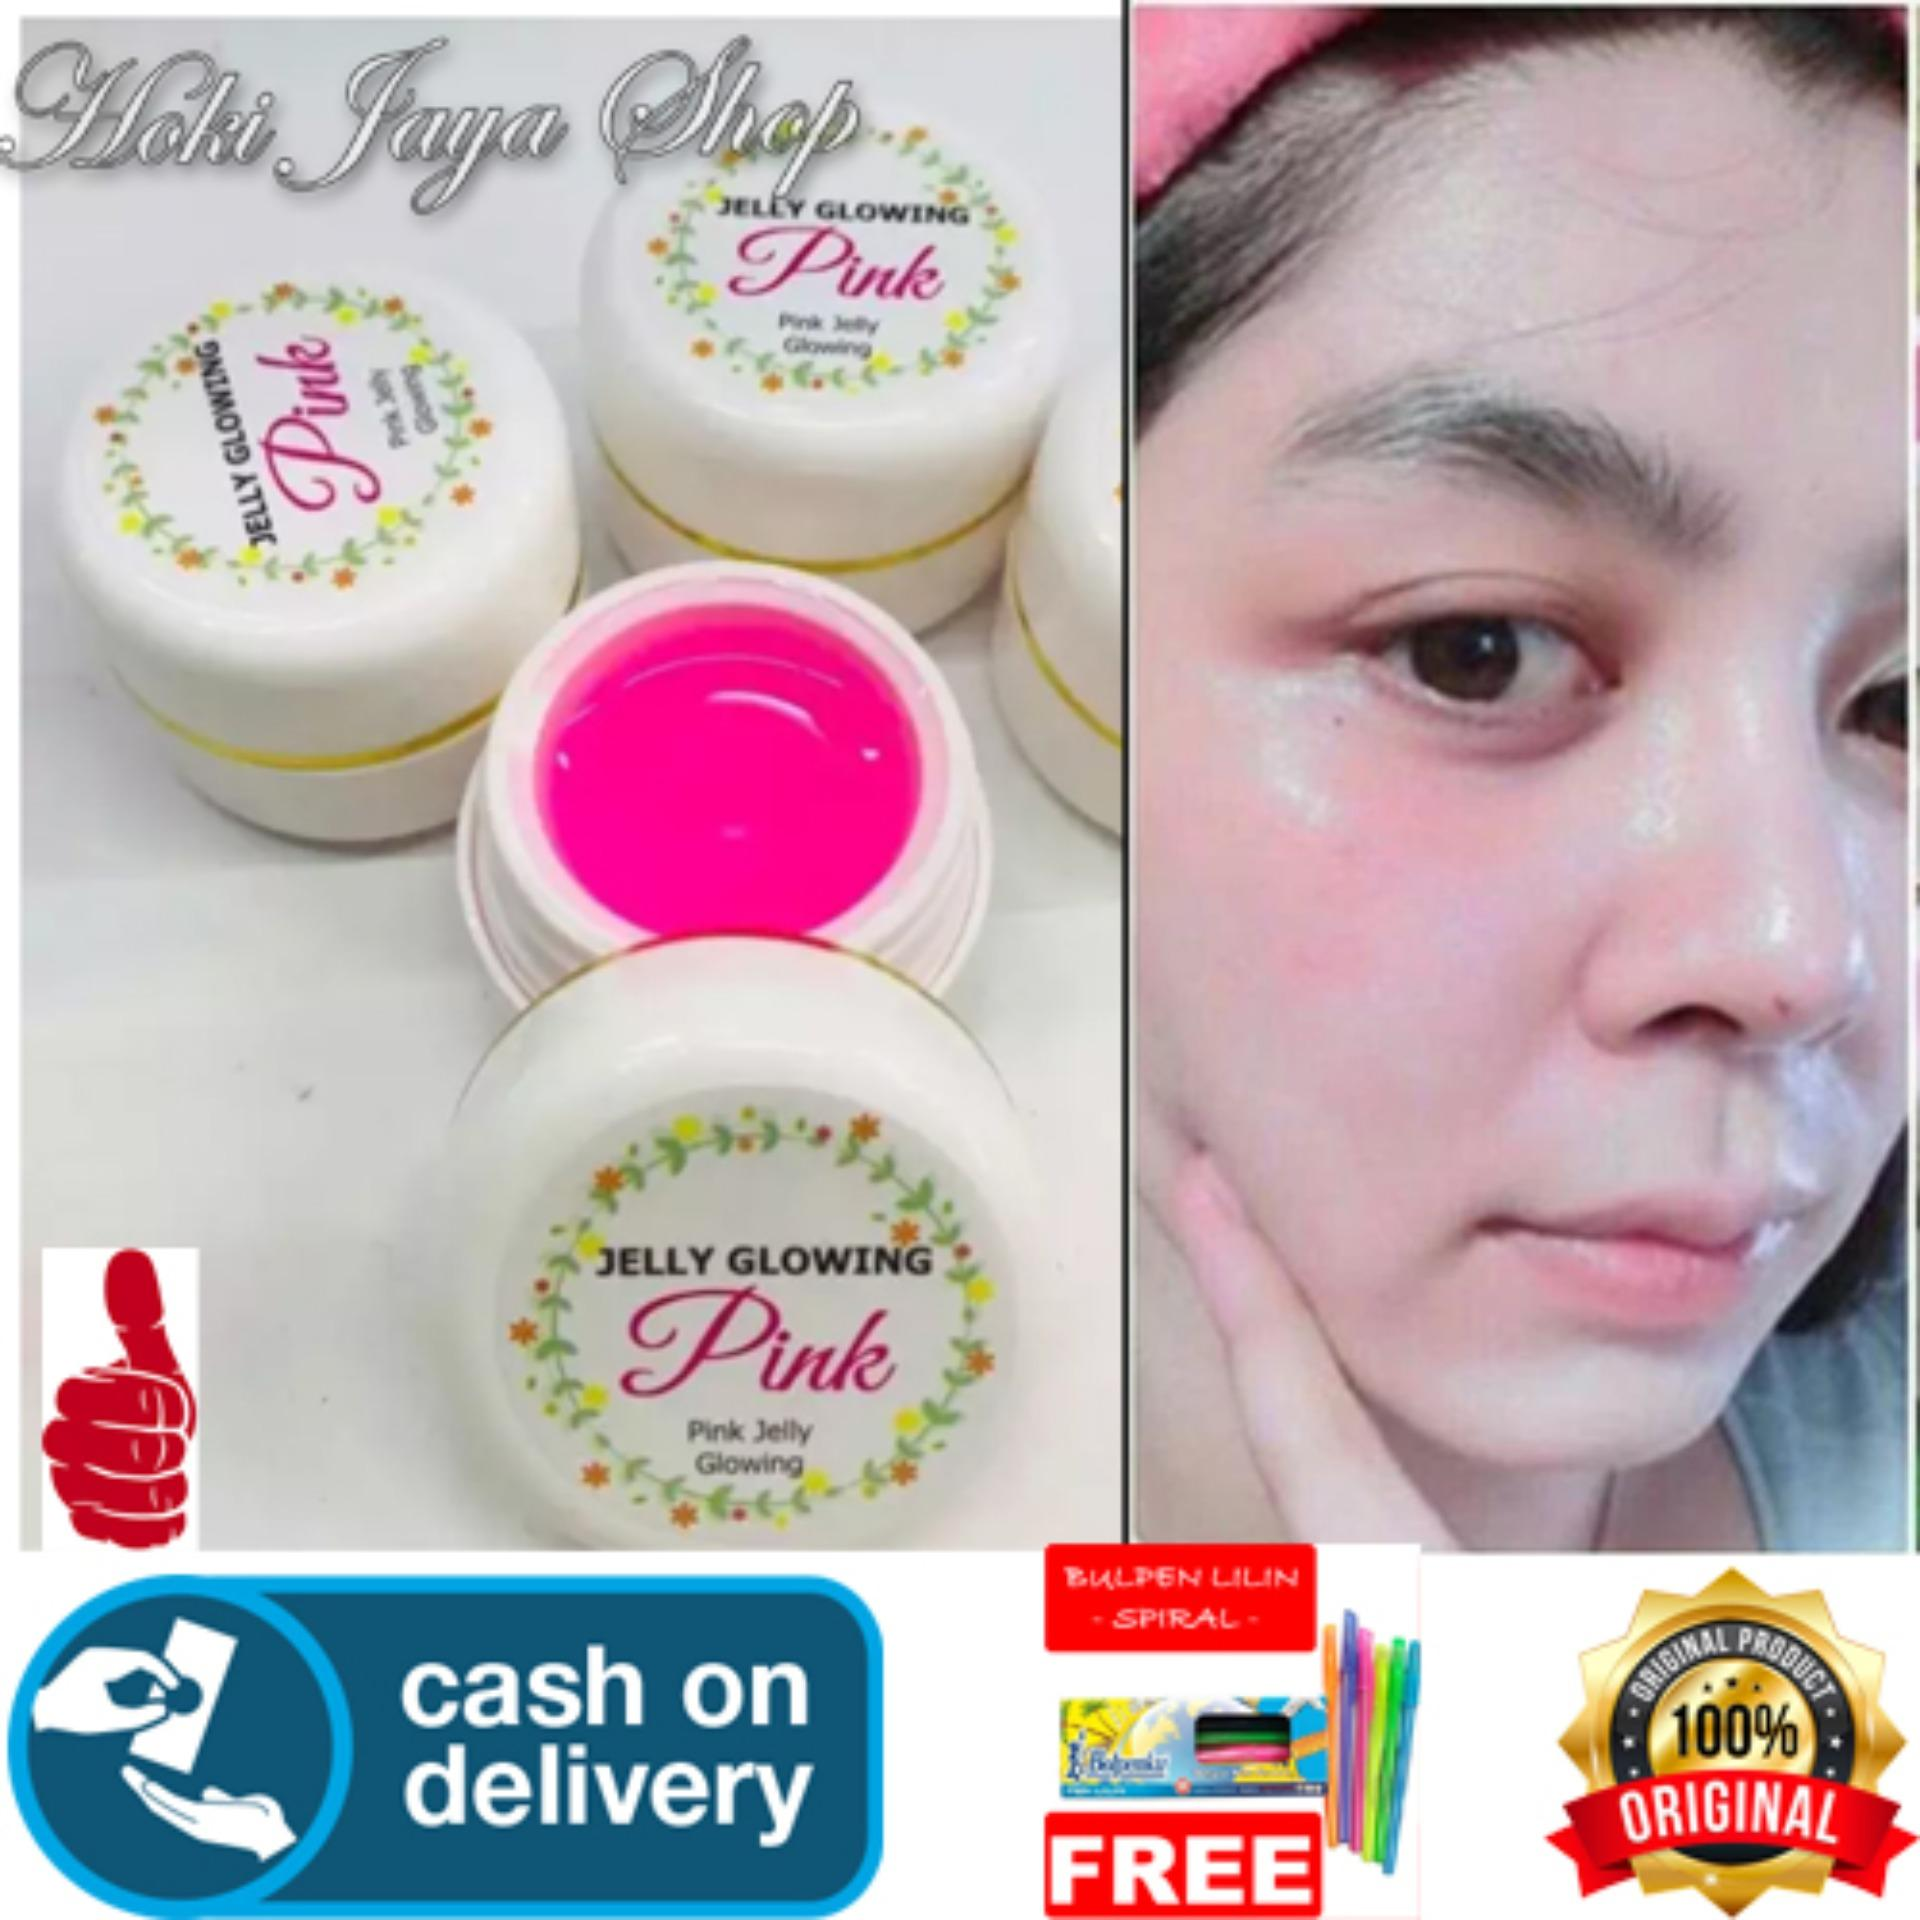 Buy Sell Cheapest Cream Hn Kemilau Best Quality Product Deals Hoki Cod Jelly Glowing Pink Whitening Original 100 Gratis Pulpen